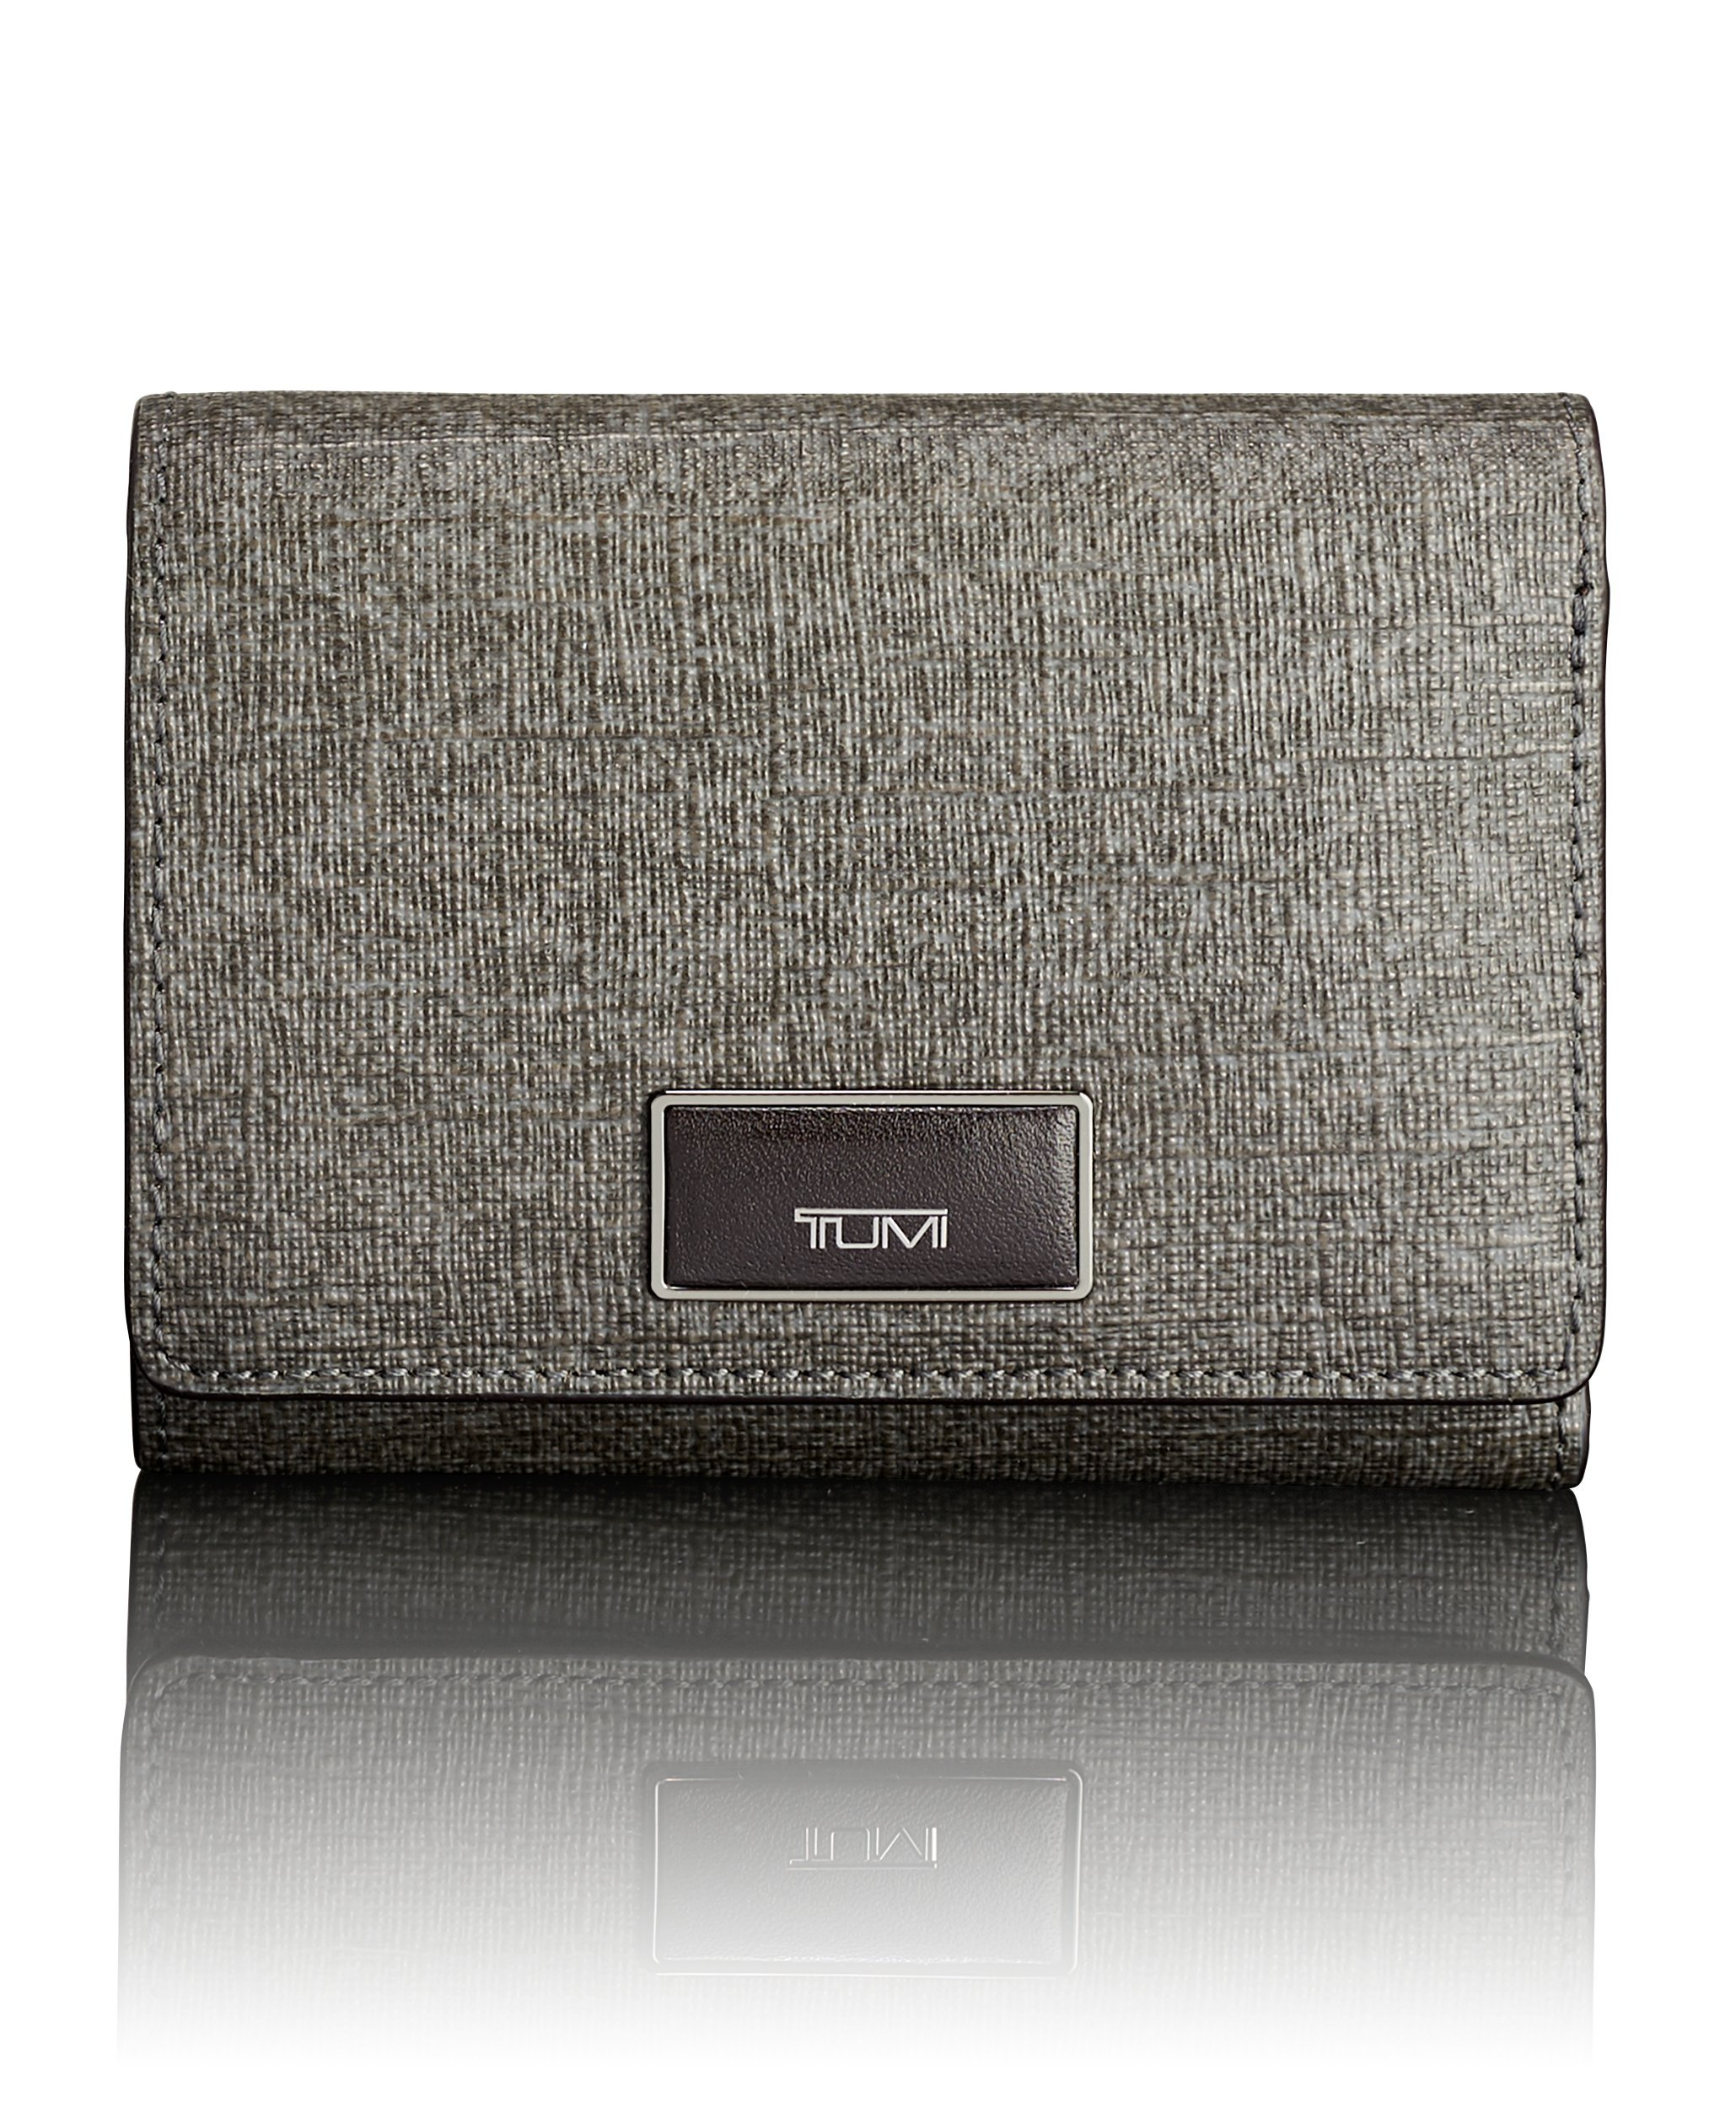 Tumi Women's Belden Tri-Fold Wallet Travel Purse, Earl Grey, One Size